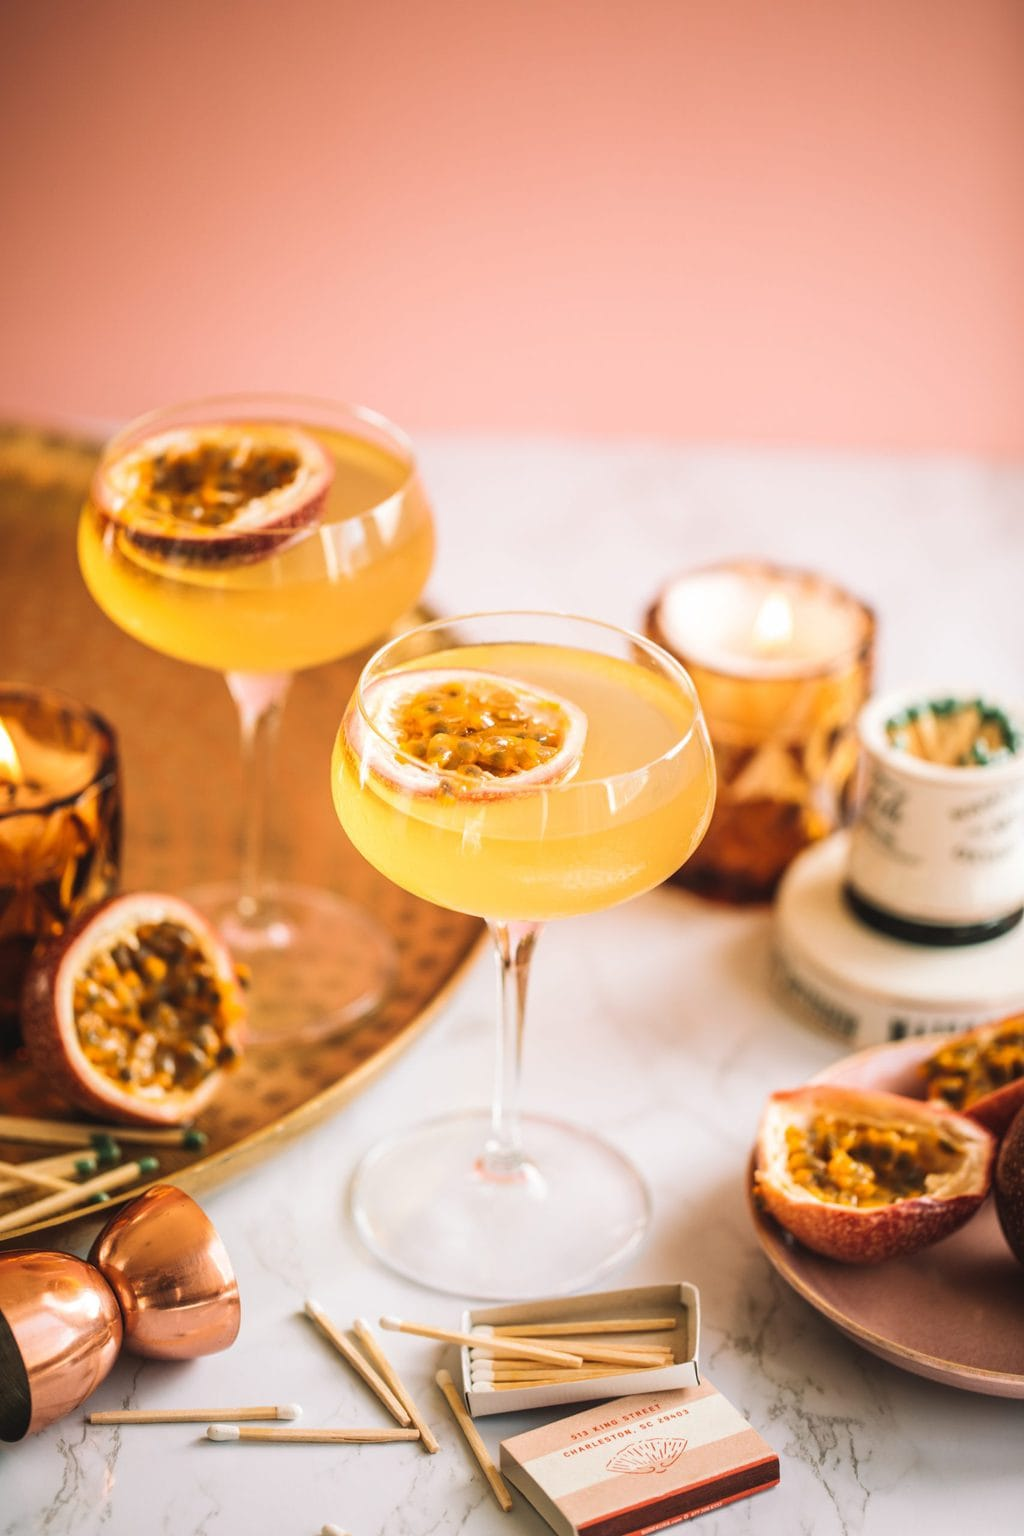 A passion fruit martini served in a coupe glass and a garnished with a passion fruit half.